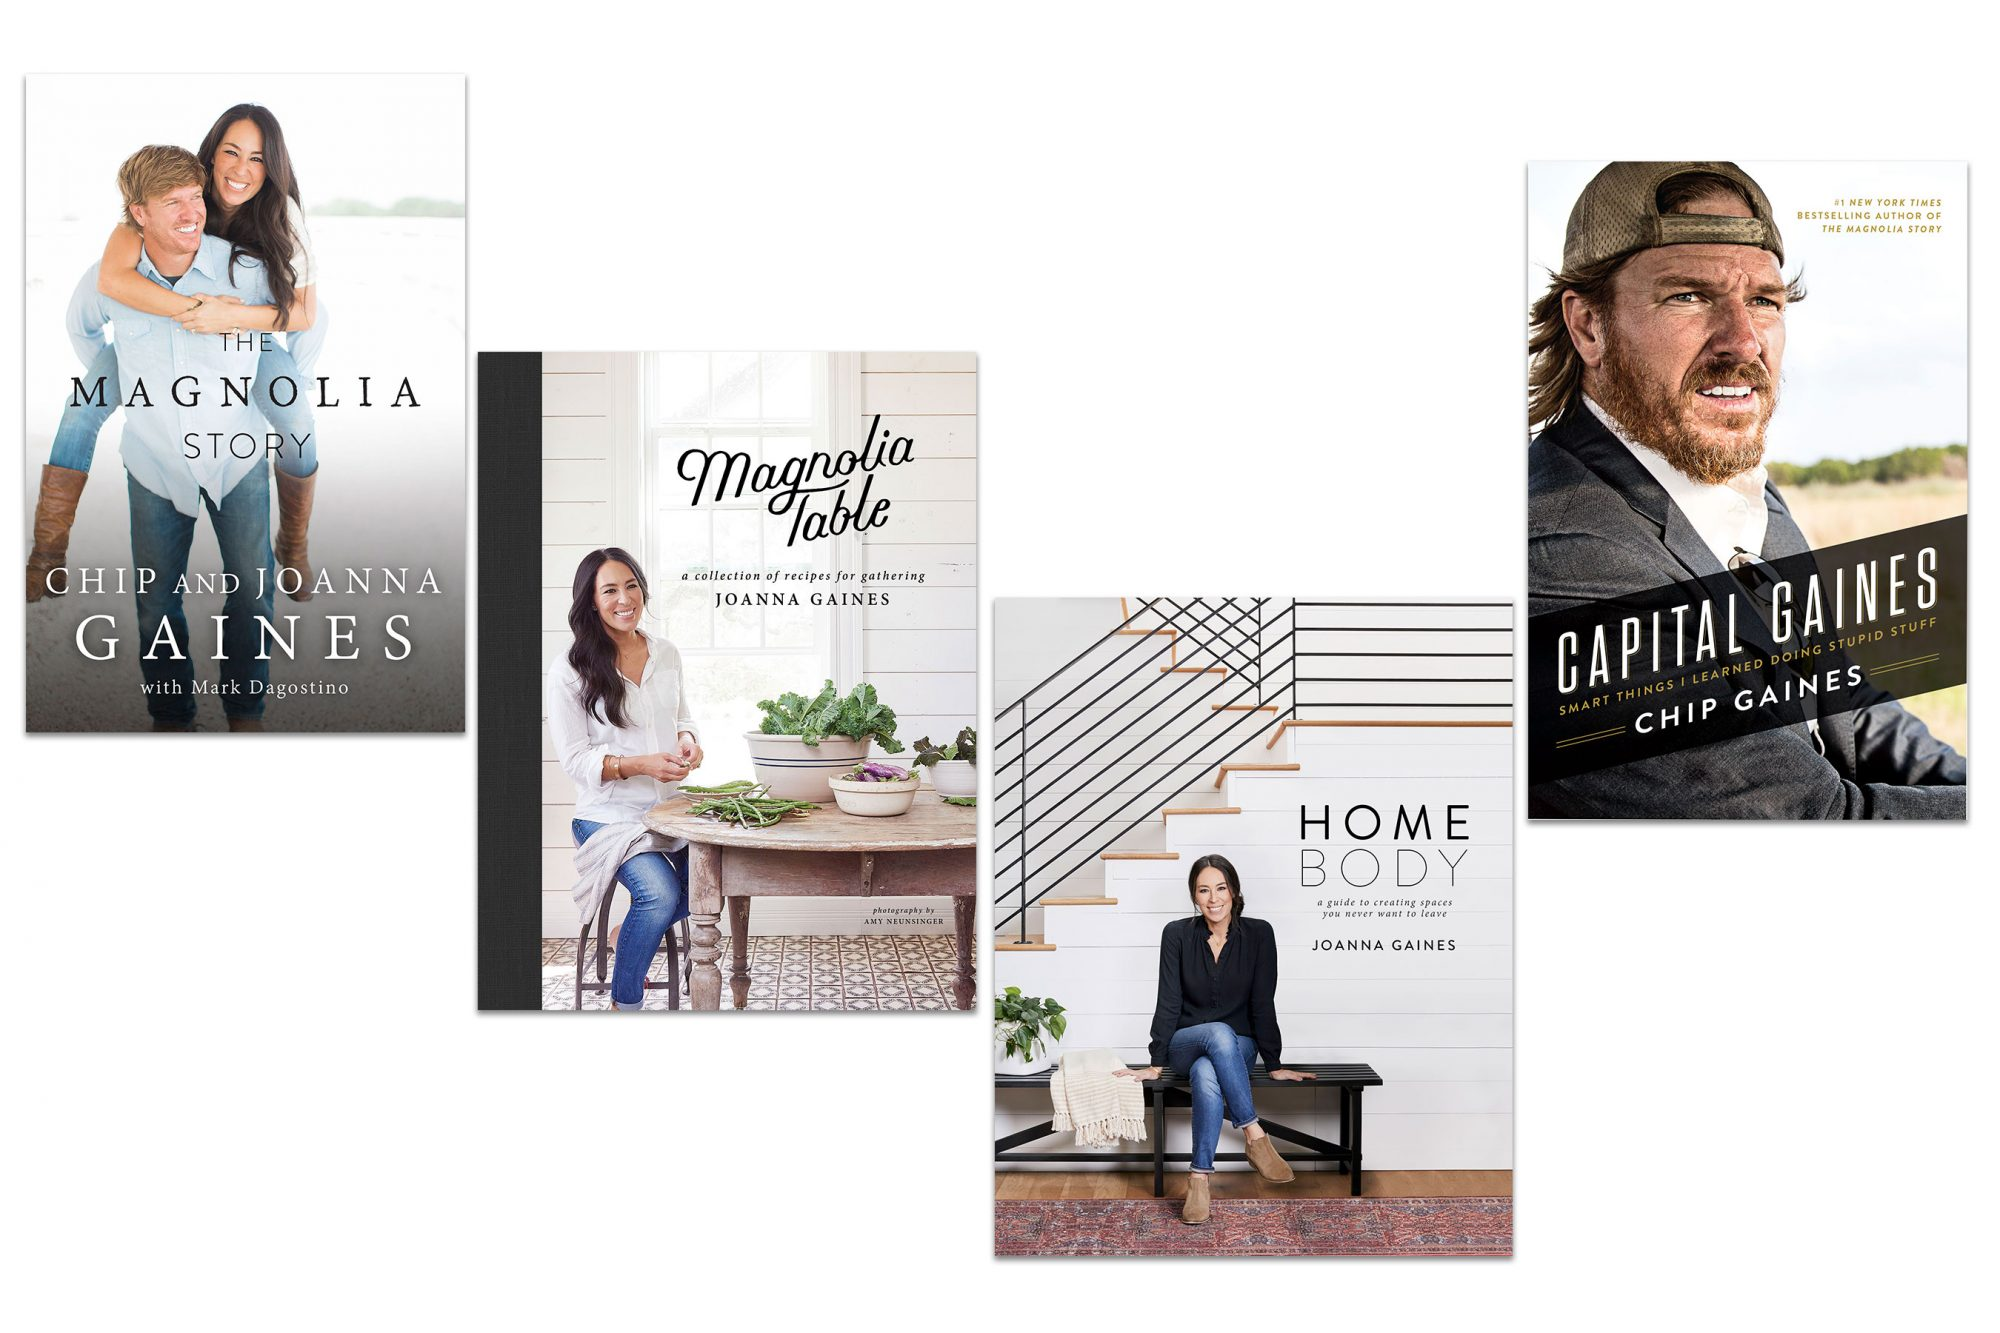 Every Single Book by Chip and Joanna Gaines Is Seriously Discounted Right Now books